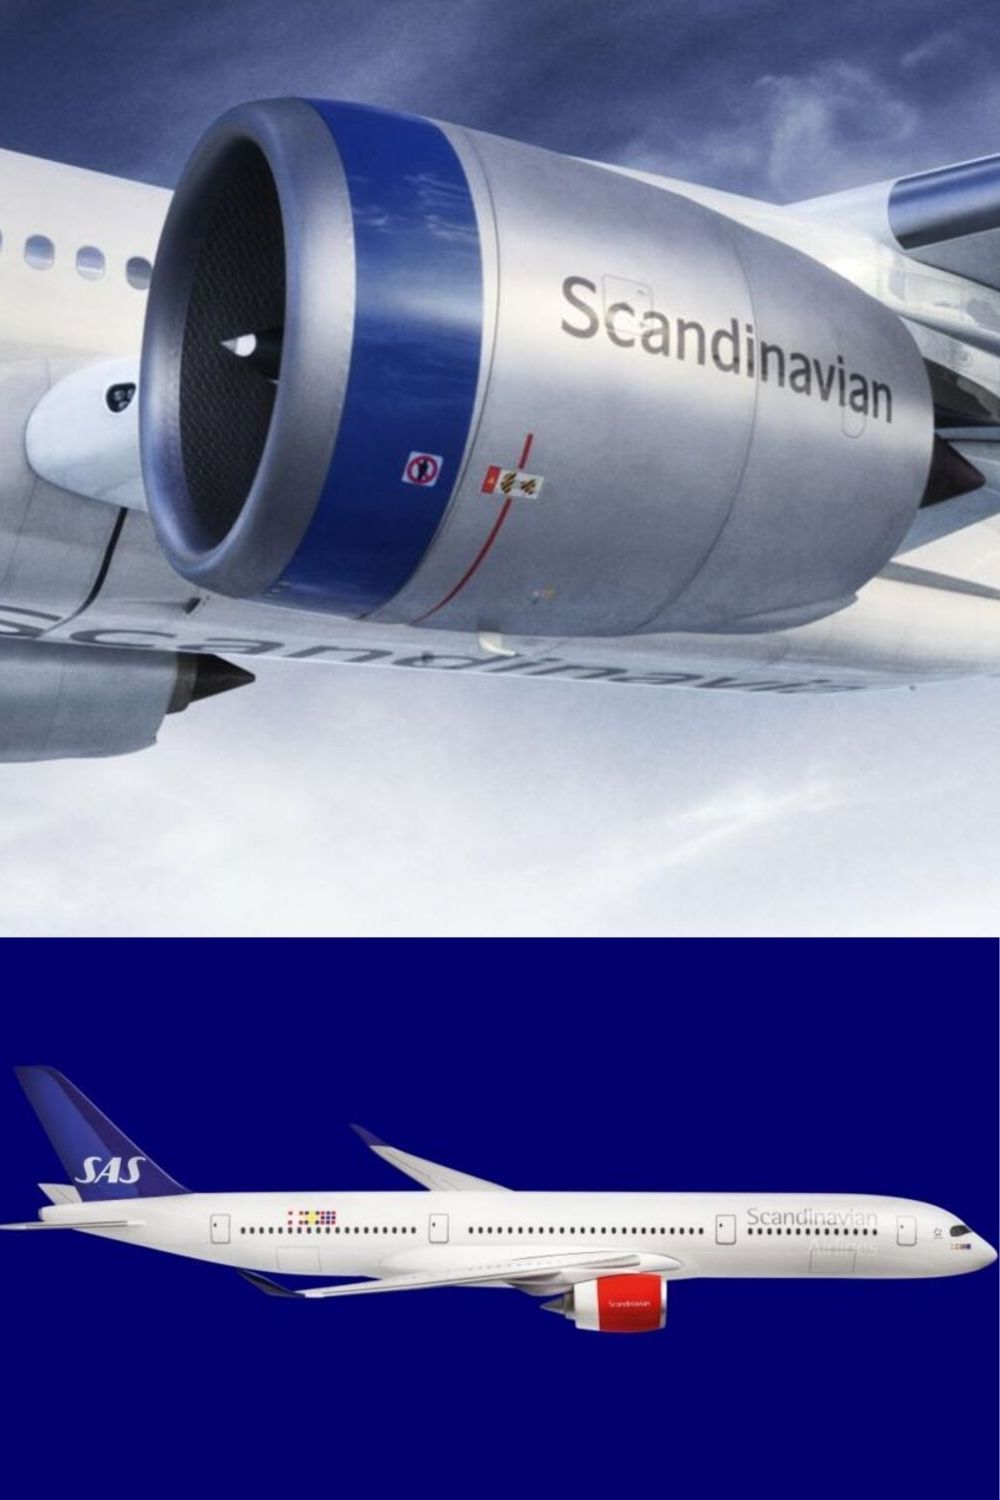 Sas Scandinavian Airlines Livery History Since 1946 Captainjetson Scandinavian Sas Airlines